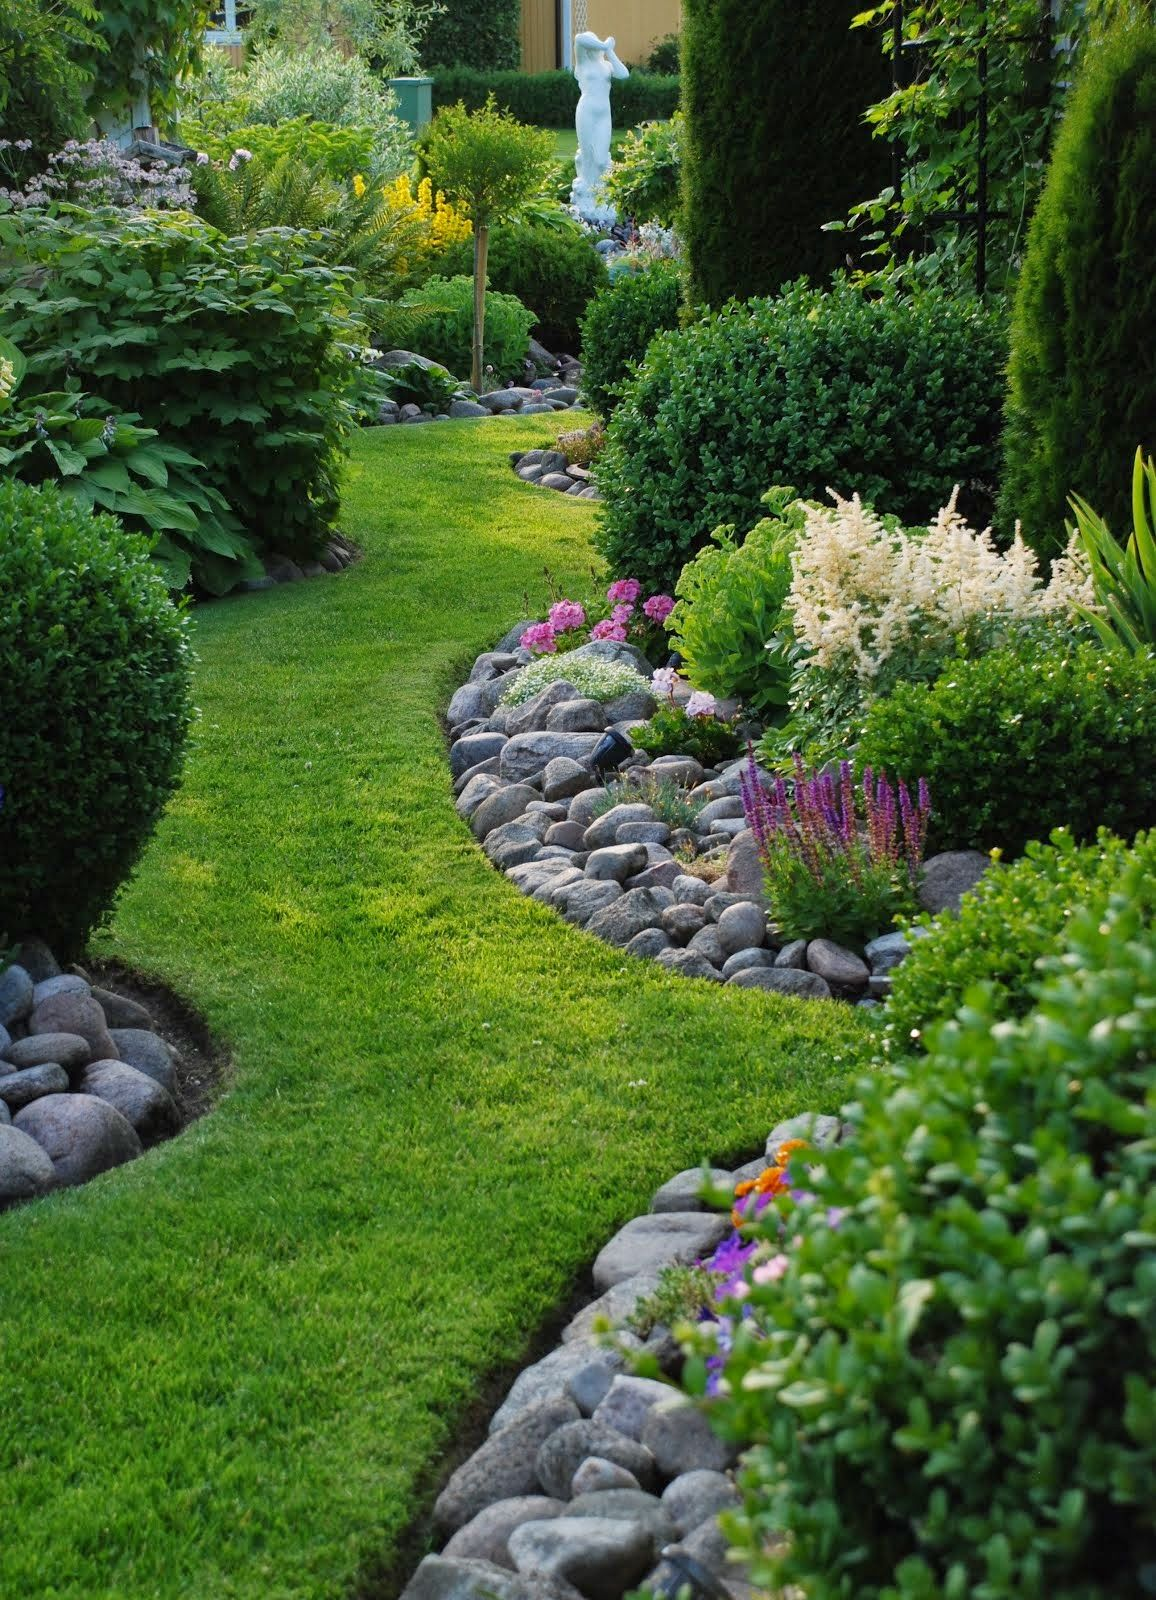 Natural looking garden edging river rocks used along grass garden paths stenlycka blogspot